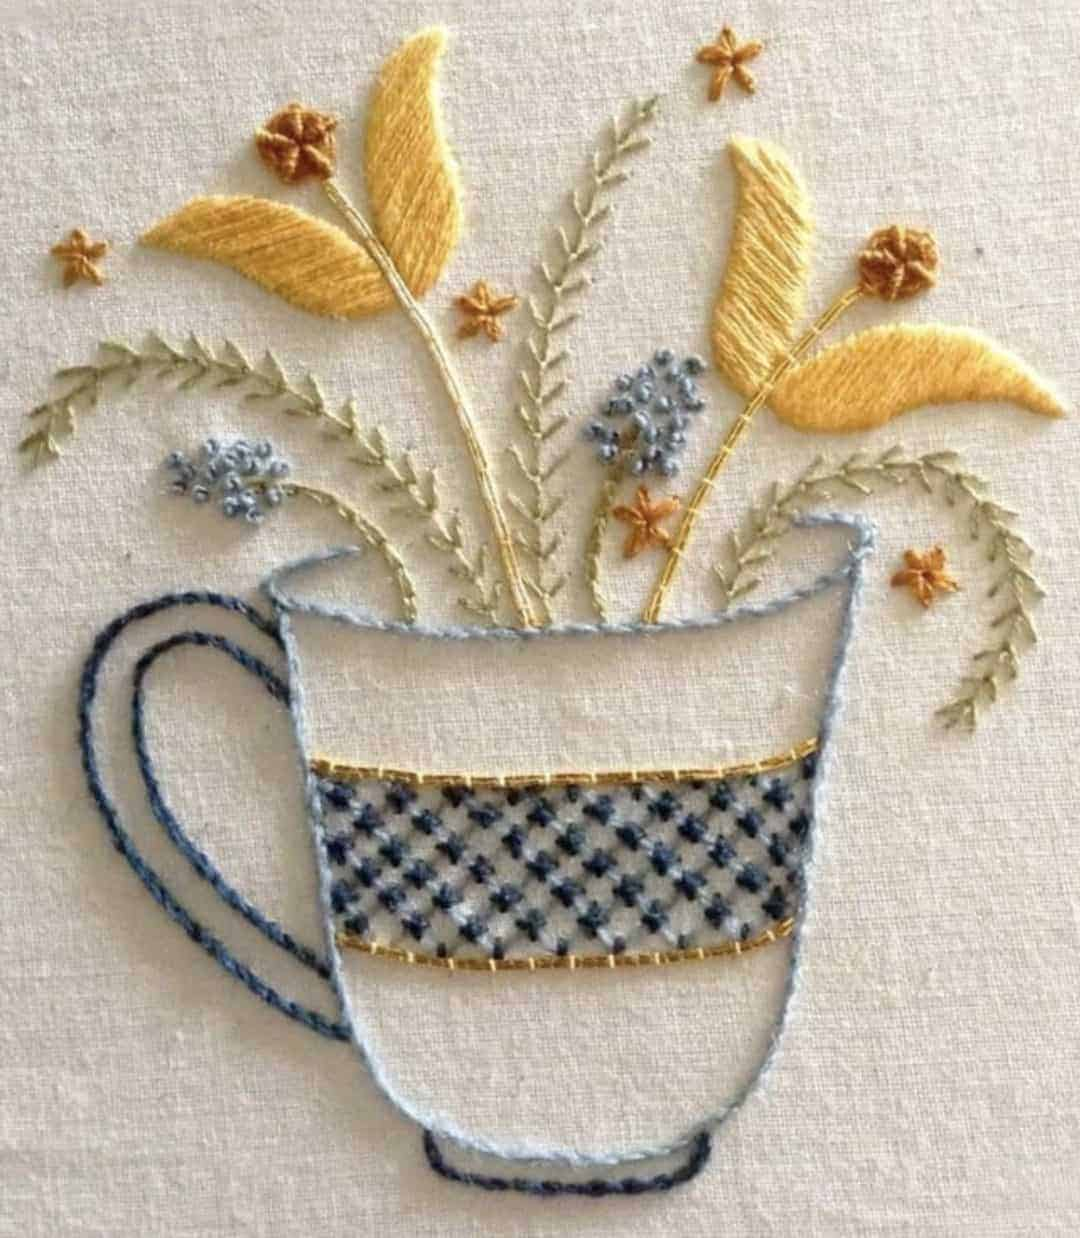 Bluebird embroidery co Flower tea cup crewel work kit available to buy along with other beautiful crewel work patterns and kits I've shared on the blog #crewel #embroidery #kit #bluebird #tea #cup #flower